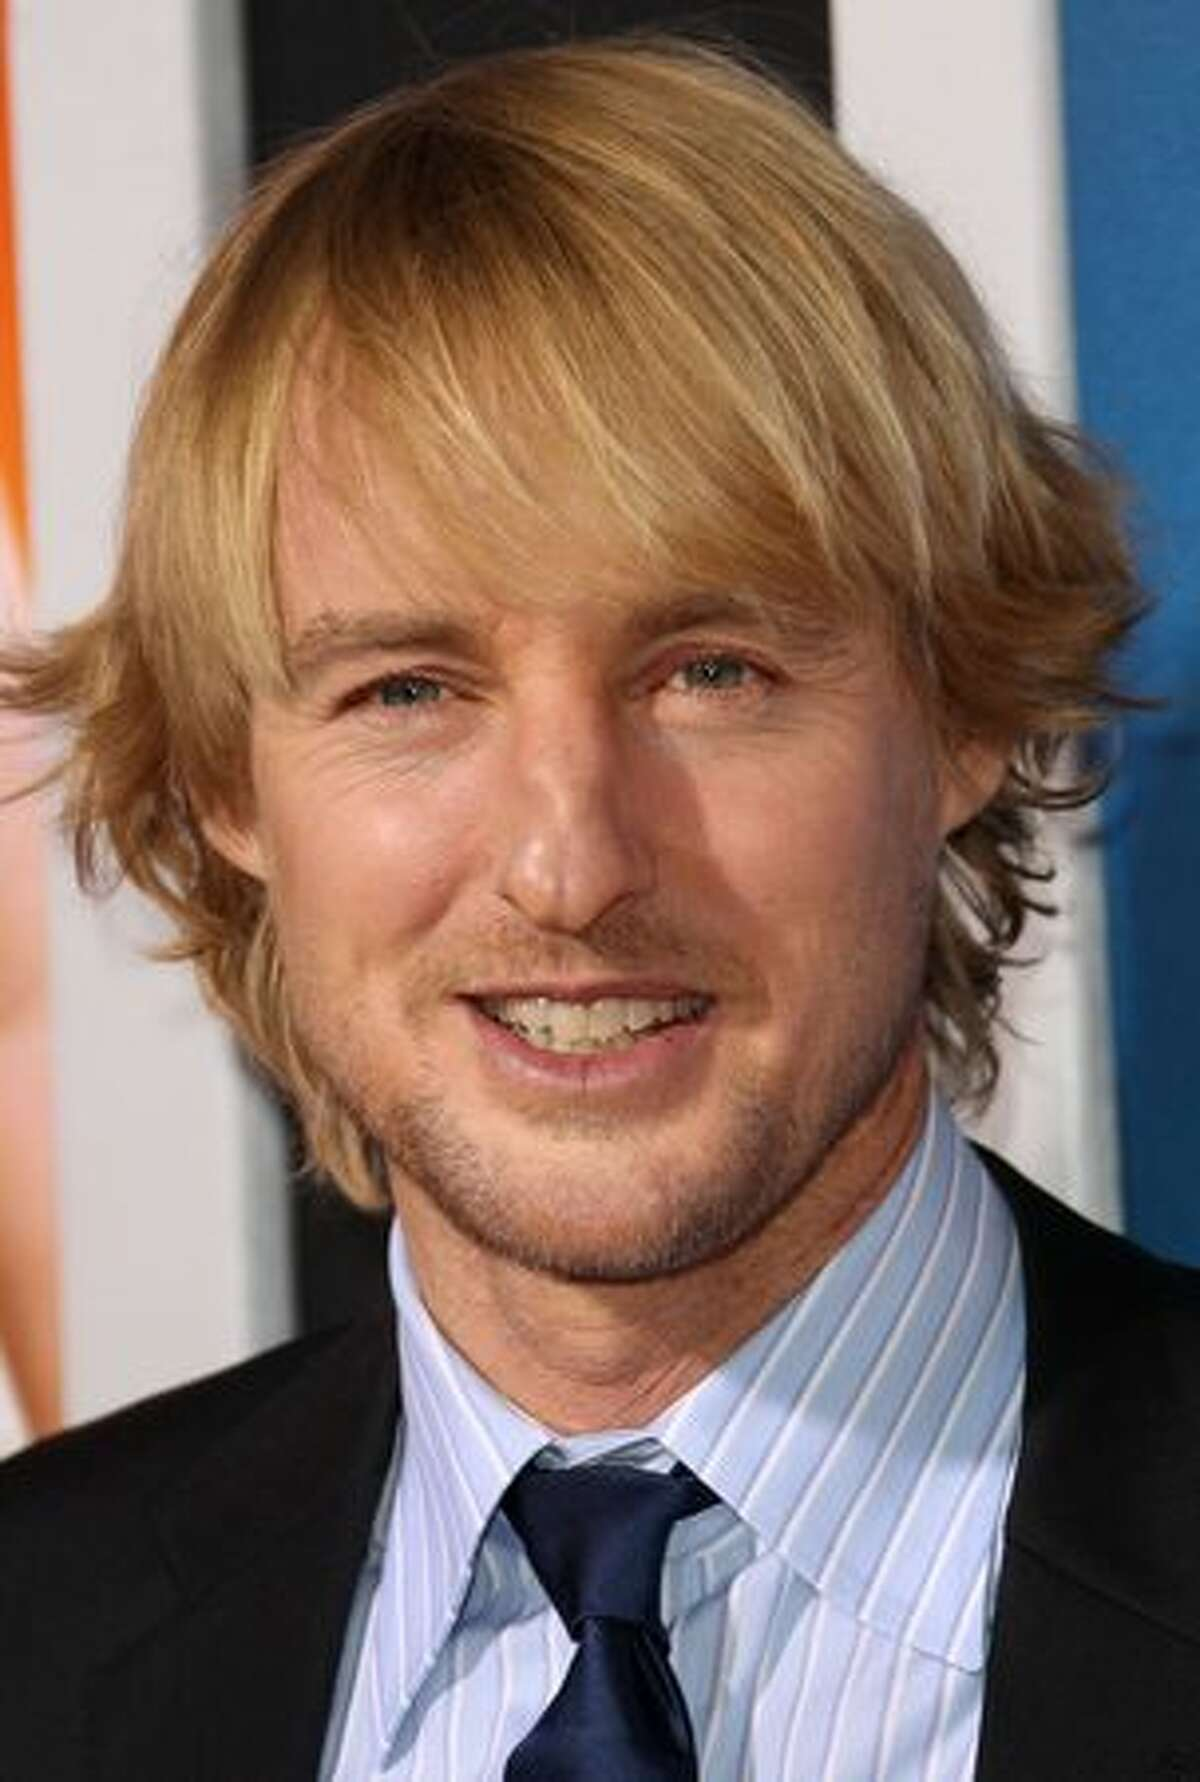 """Actor Owen Wilson attends the premiere of Warner Brothers' """"Hall Pass"""" at the Cinerama Dome in Los Angeles, California."""